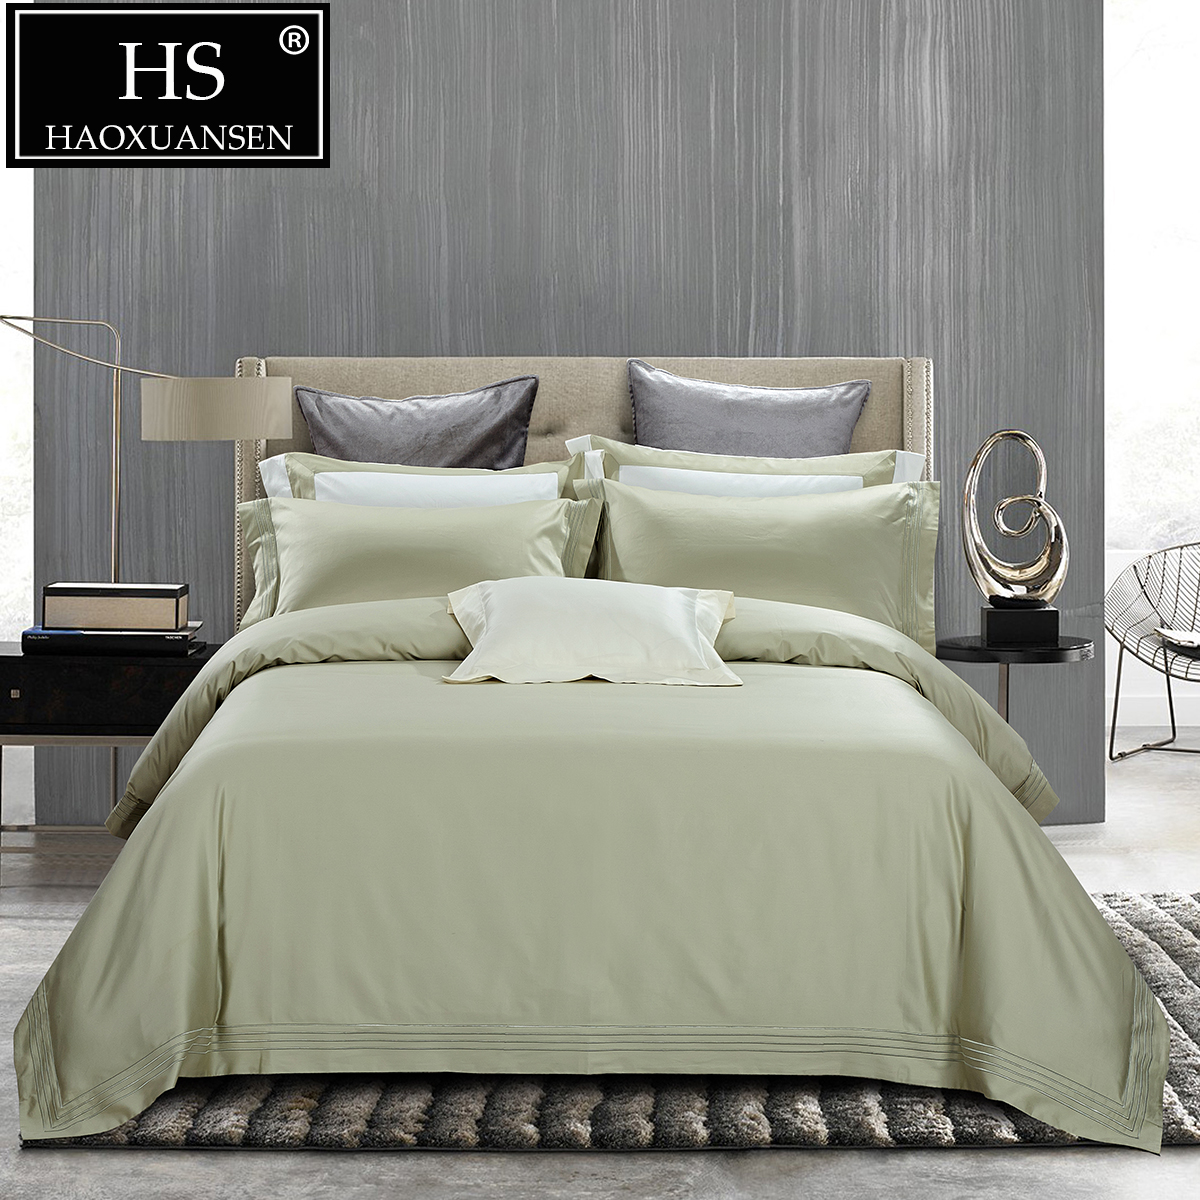 luxury high end 650 thread count embroidery 4pcs bedding set 100 egyptian cotton bed linens. Black Bedroom Furniture Sets. Home Design Ideas